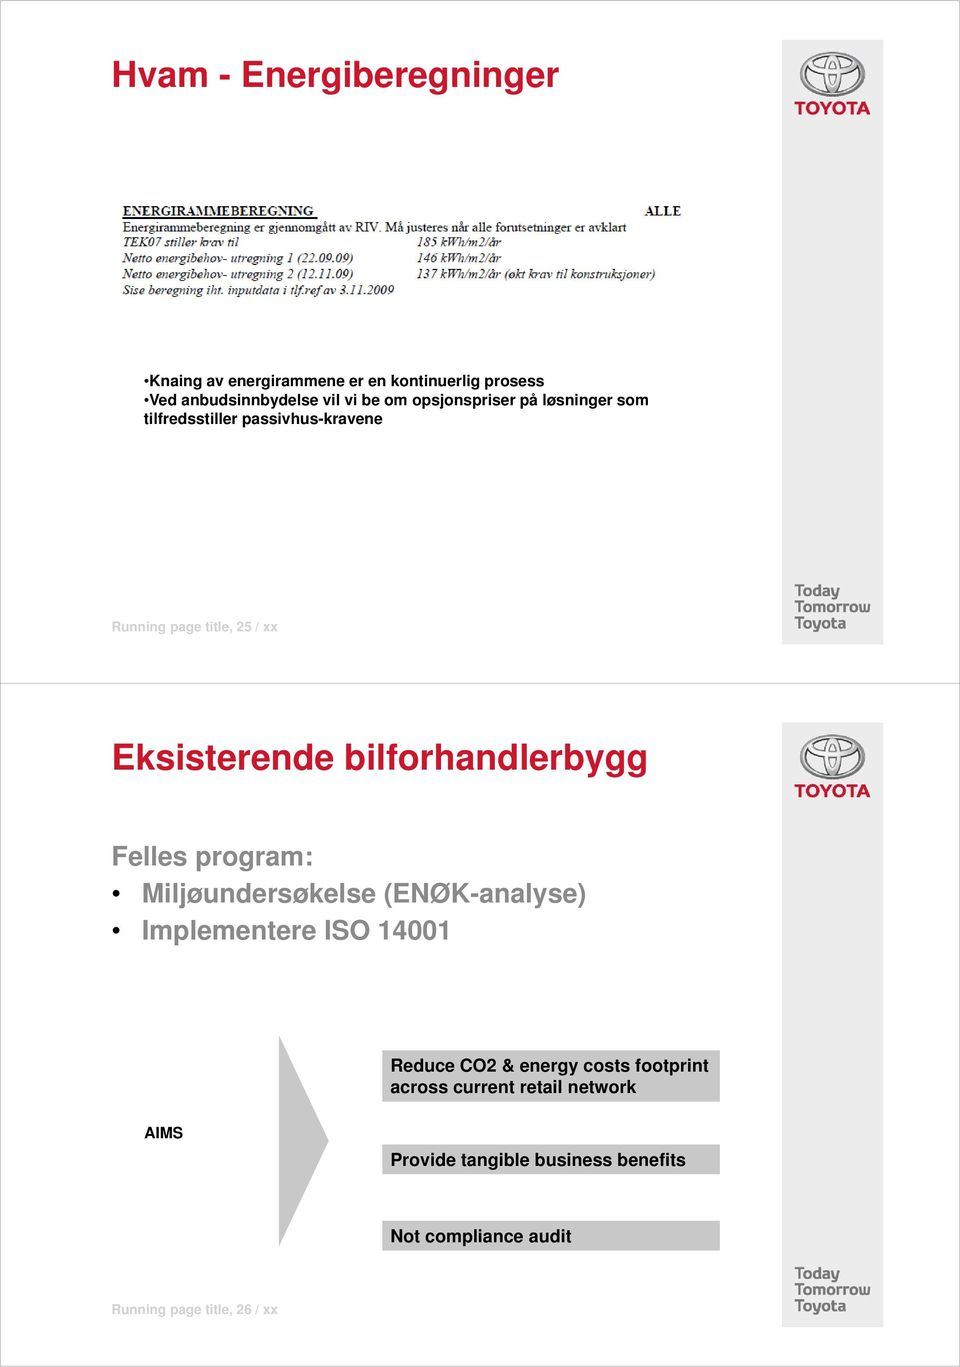 bilforhandlerbygg Felles program: Miljøundersøkelse (ENØK-analyse) Implementere ISO 14001 Reduce CO2 & energy